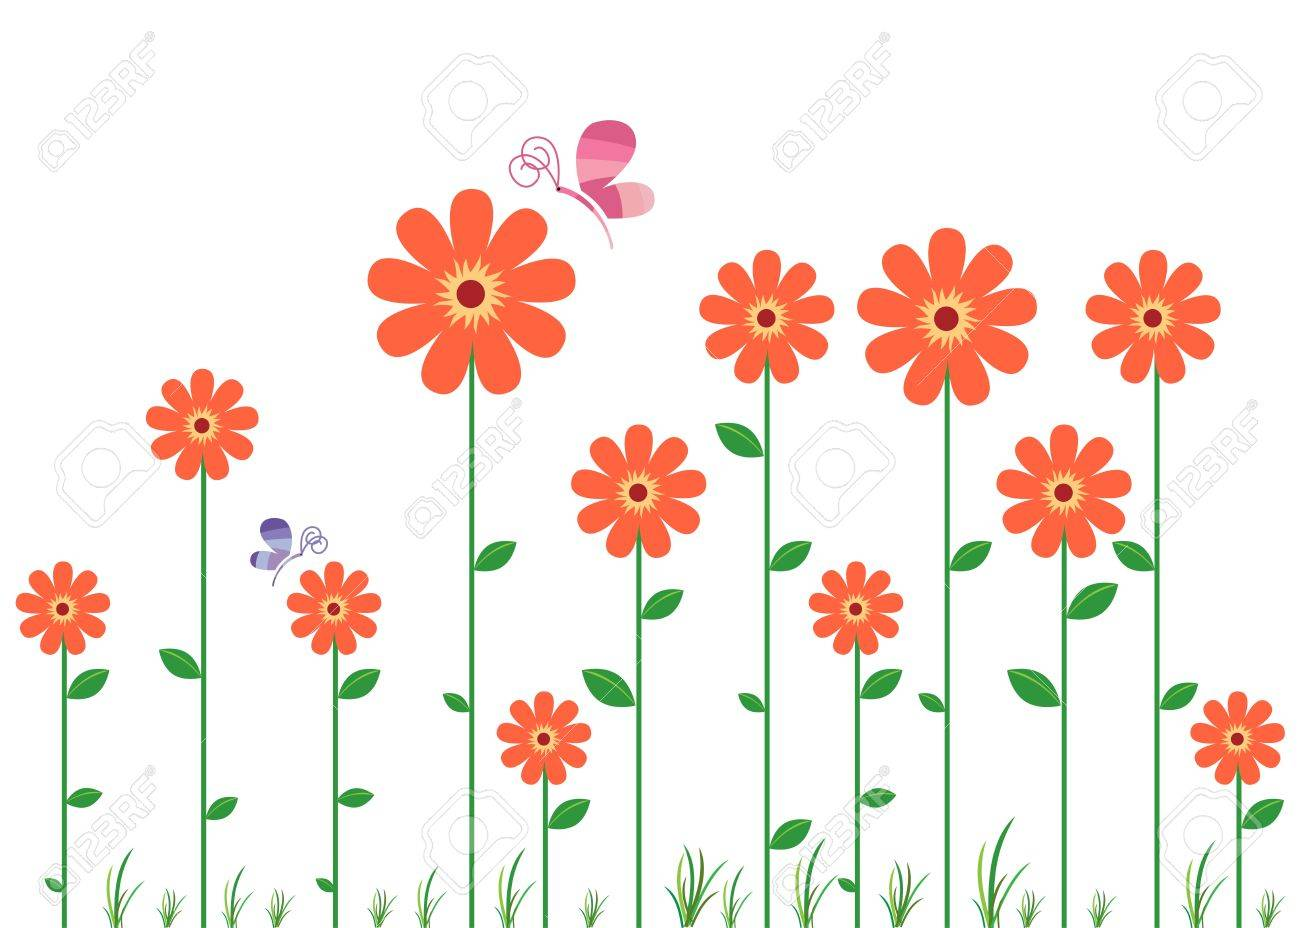 Red Flowers Decal Stock Vector - 13163662